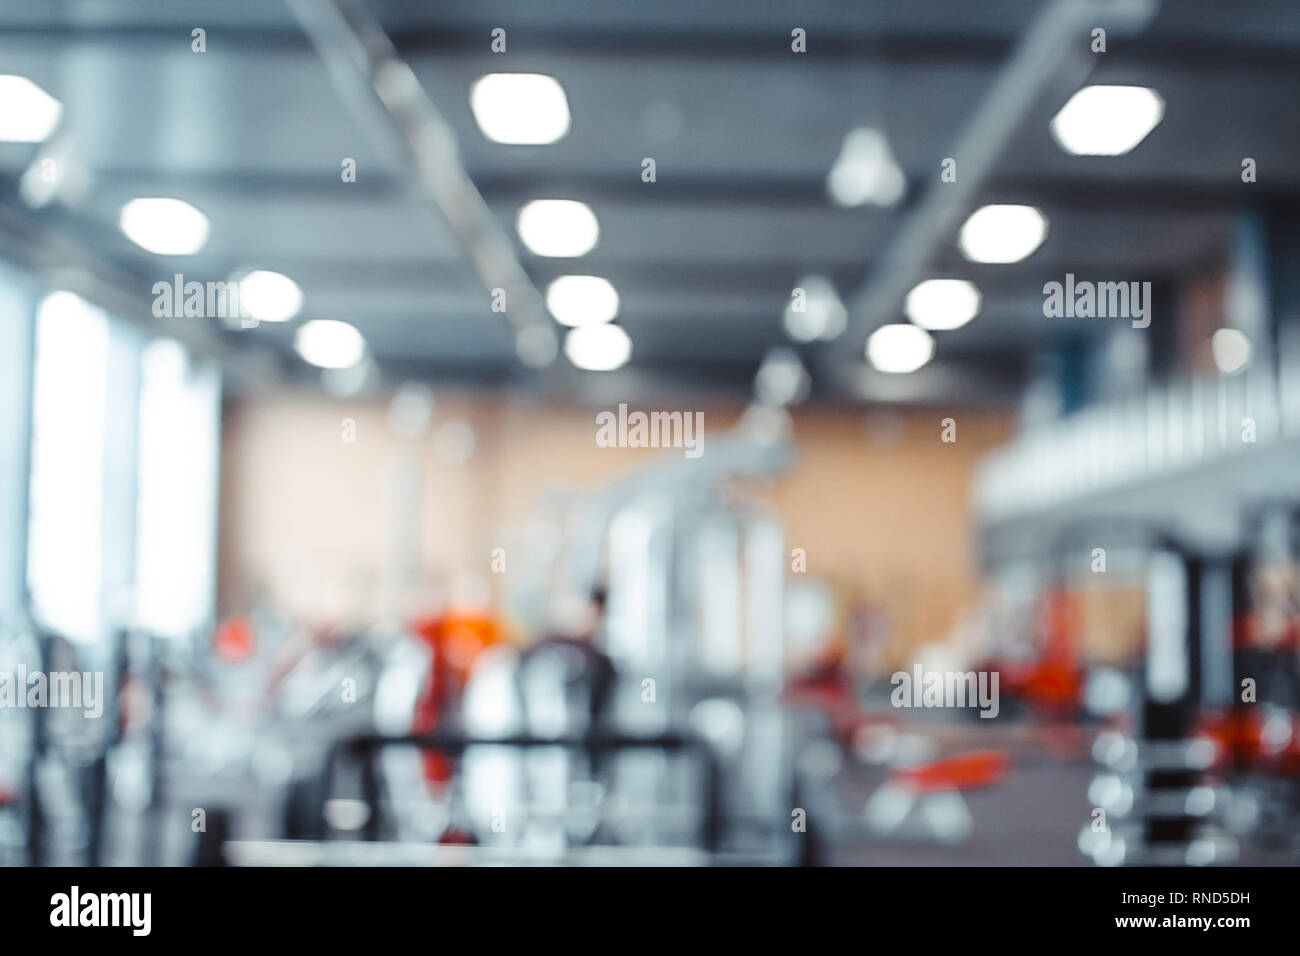 Fitness Gym background Focus on the Bench and blurred Gym